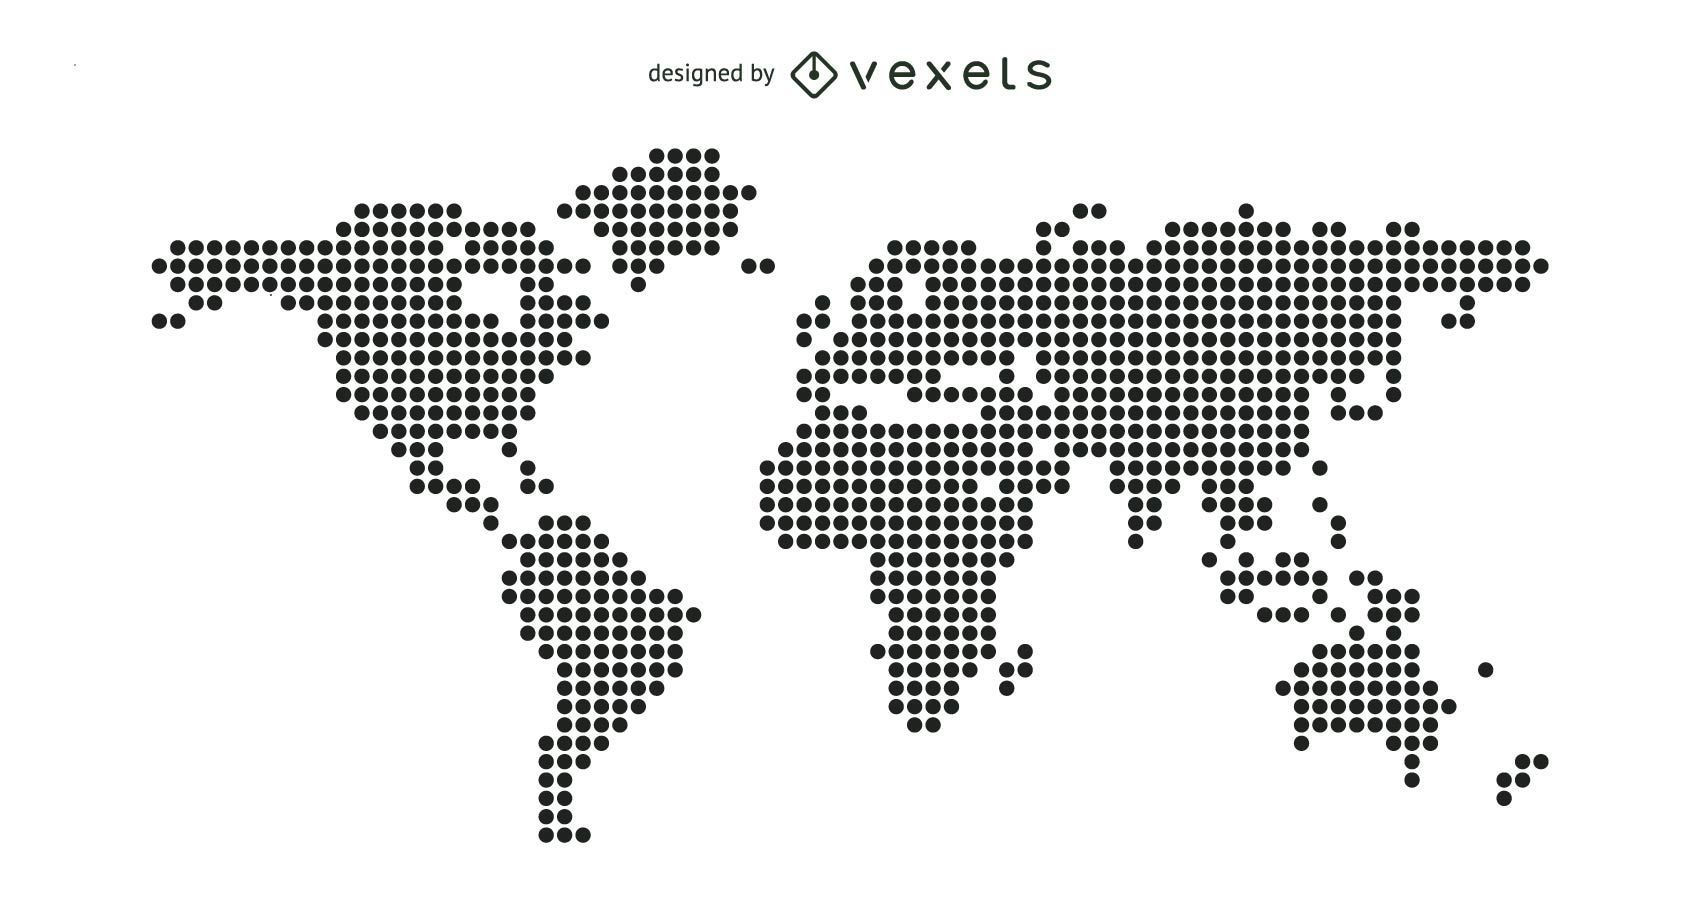 Dotted world map vector download dotted world map download large image 1701x921px license image user by vexels svg gumiabroncs Image collections